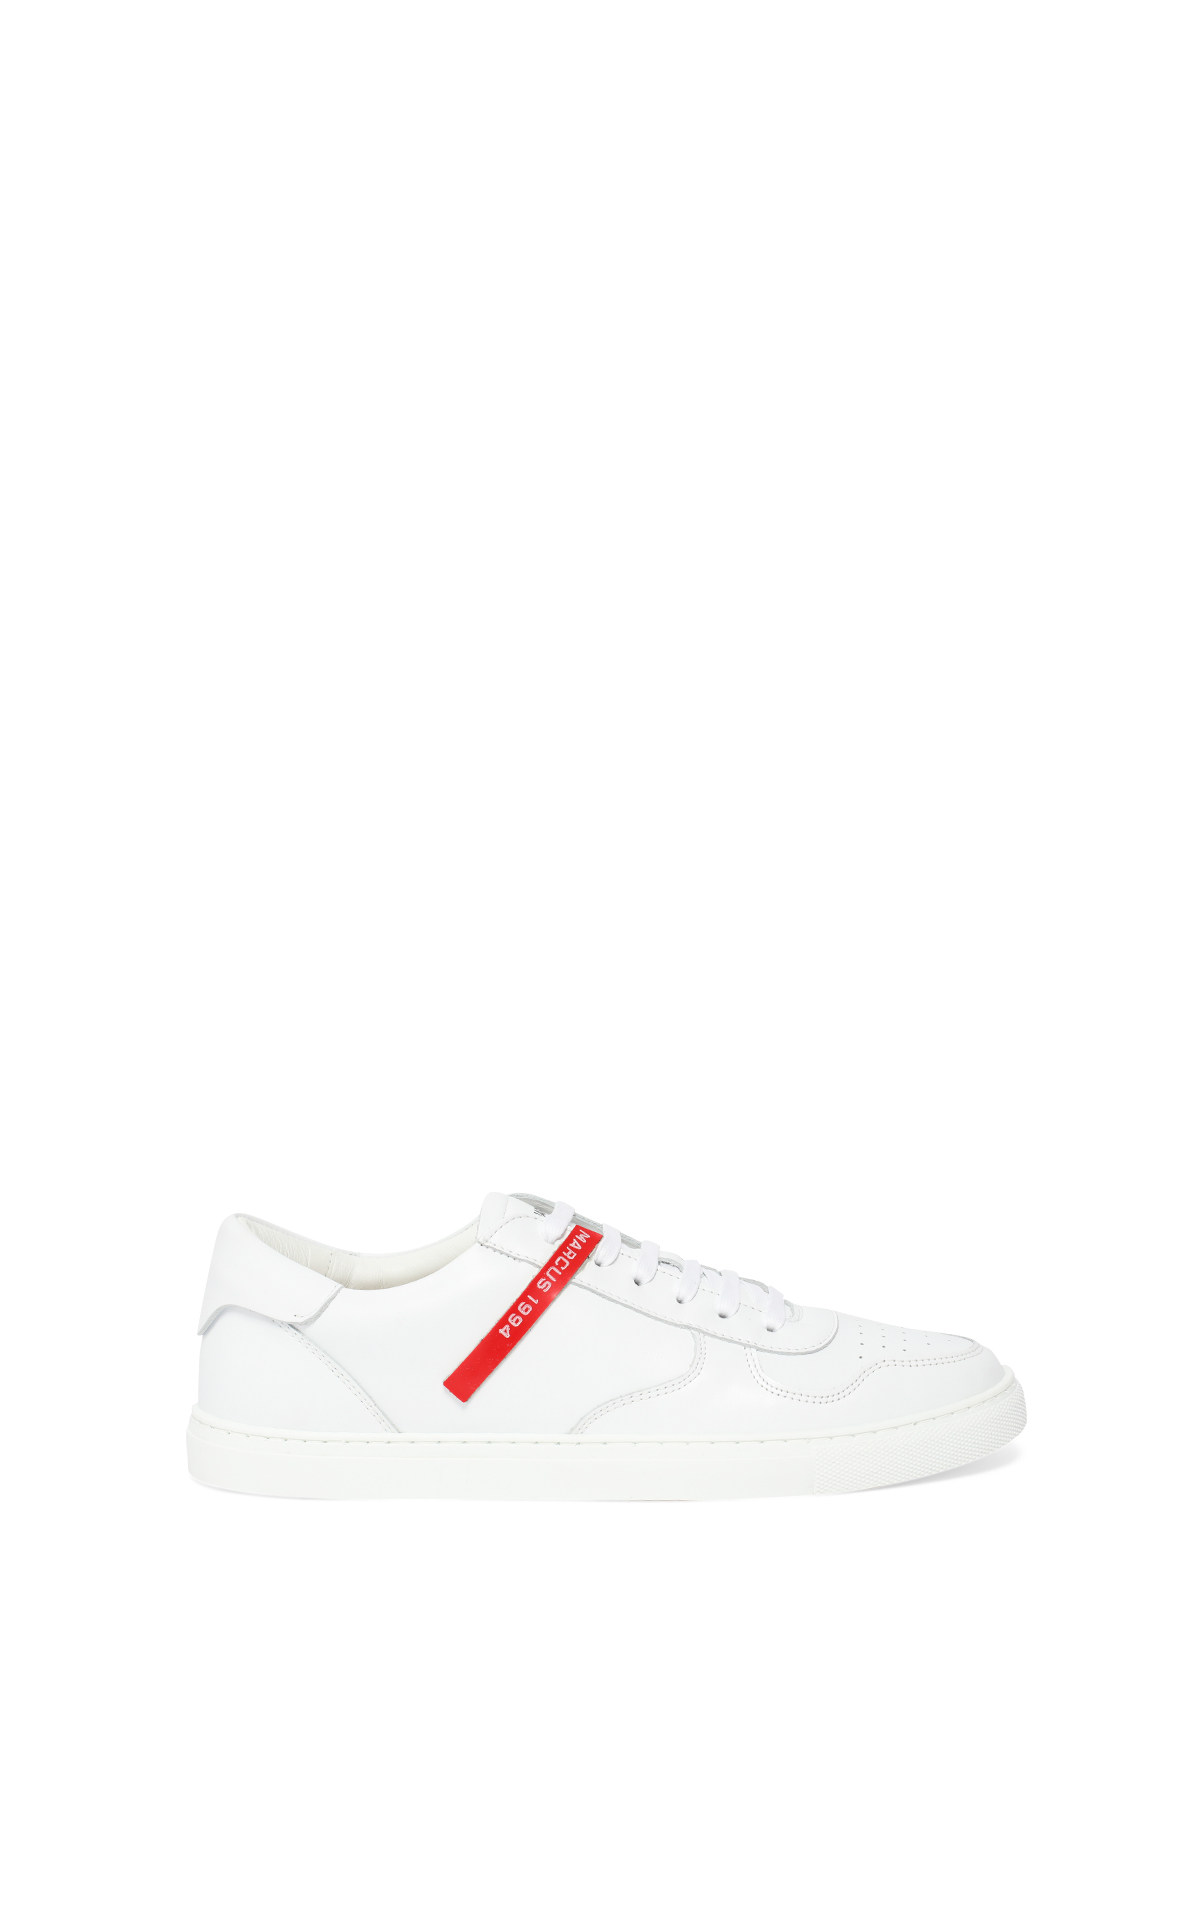 Dsquared2 Men's white sneakers*